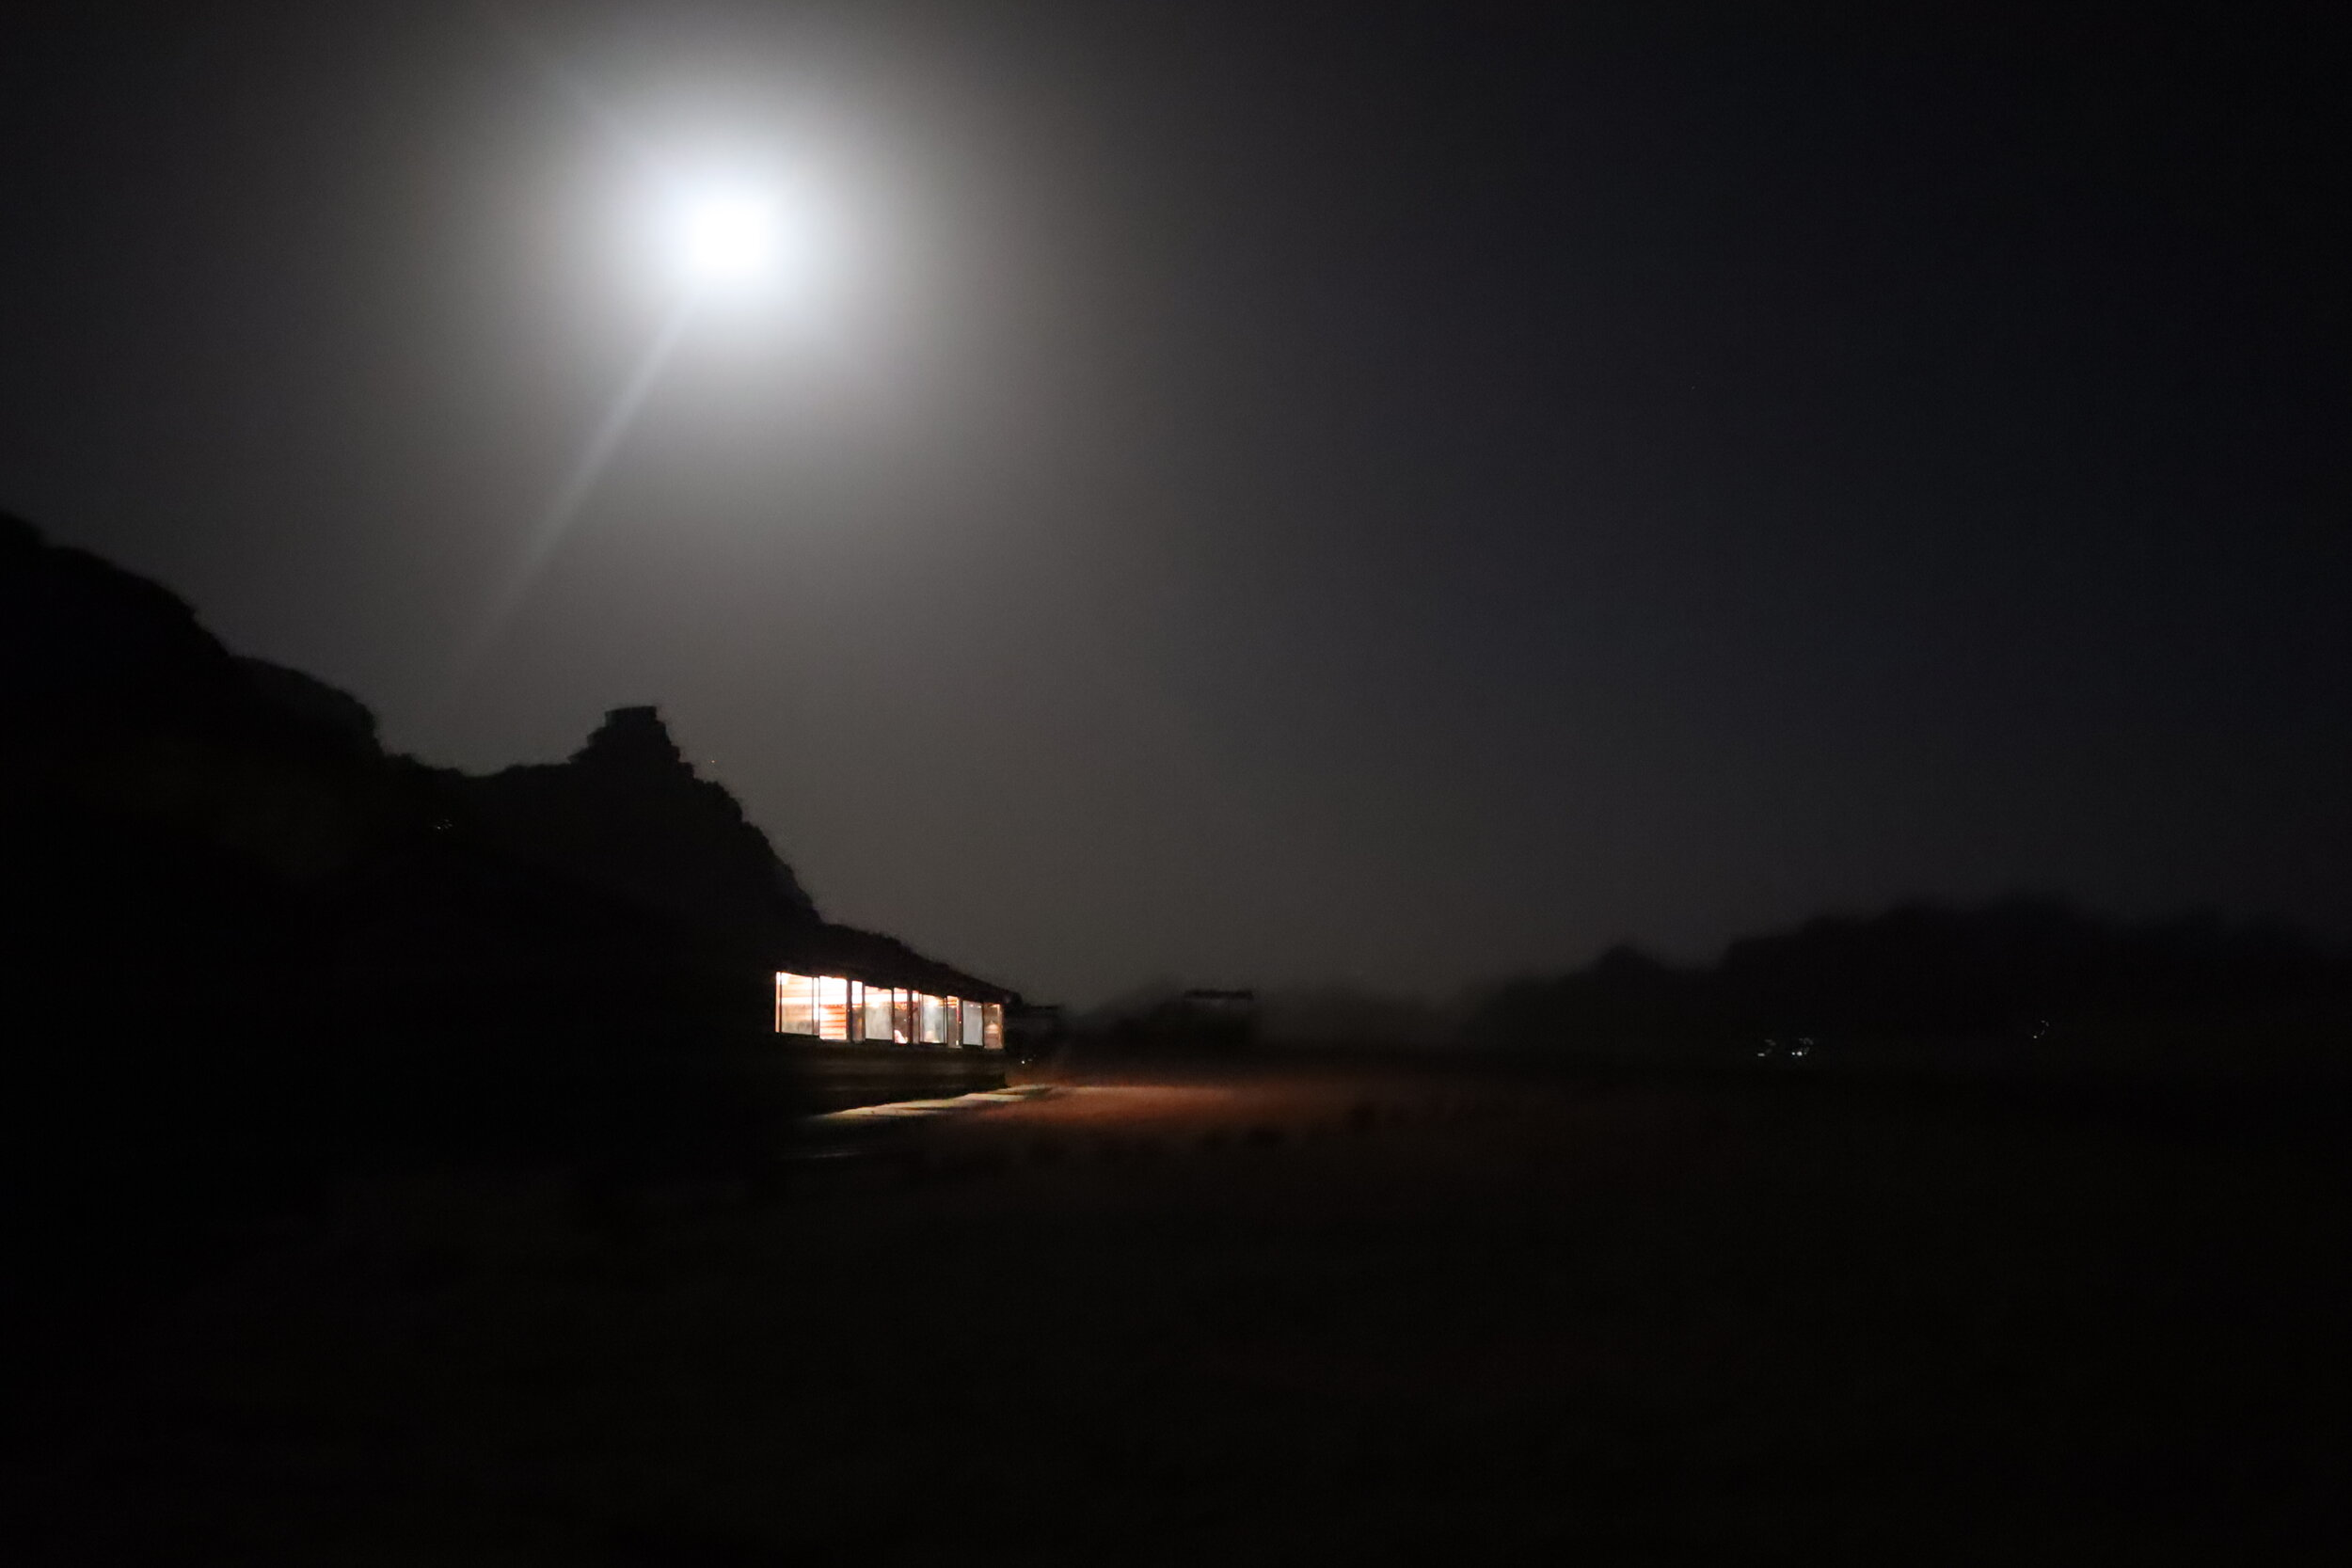 Wadi Rum Bedouin Camp by night